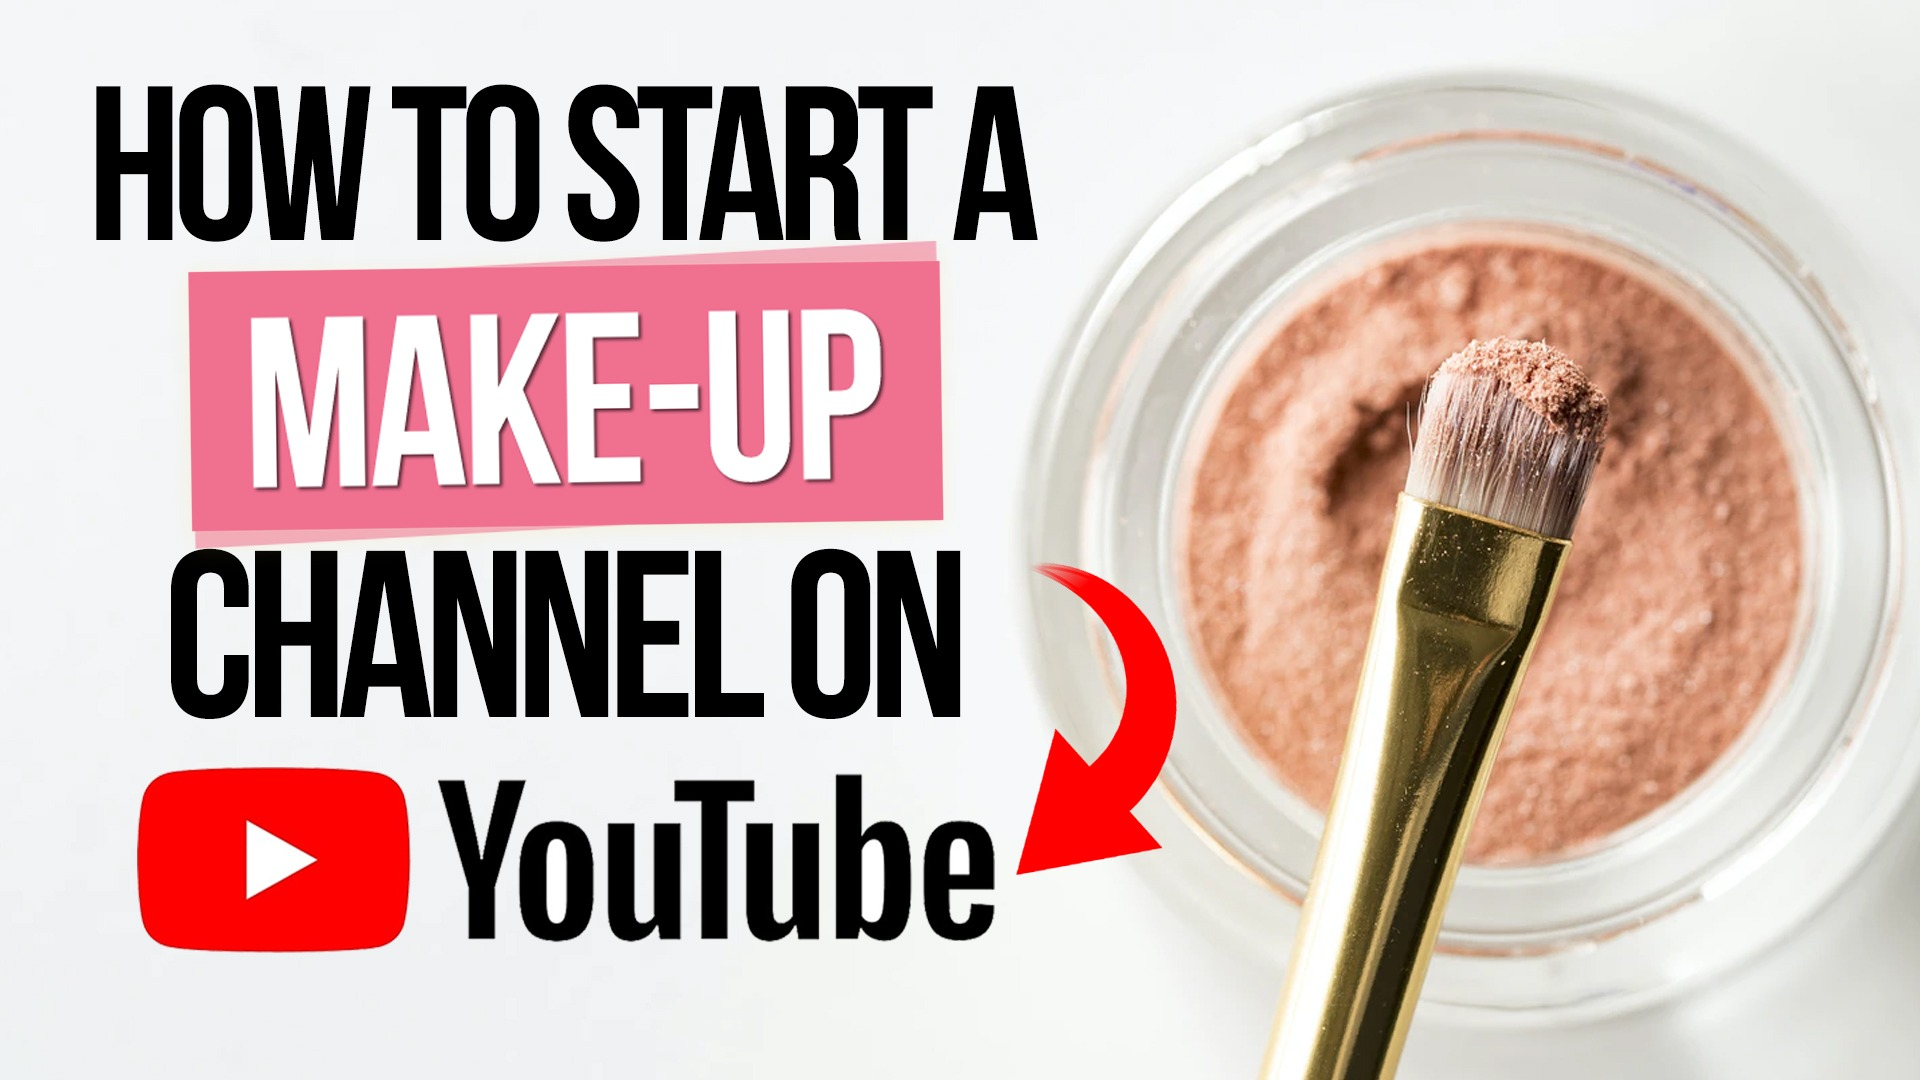 How to Start a YouTube Beauty and Make Up Channel that Makes You Money